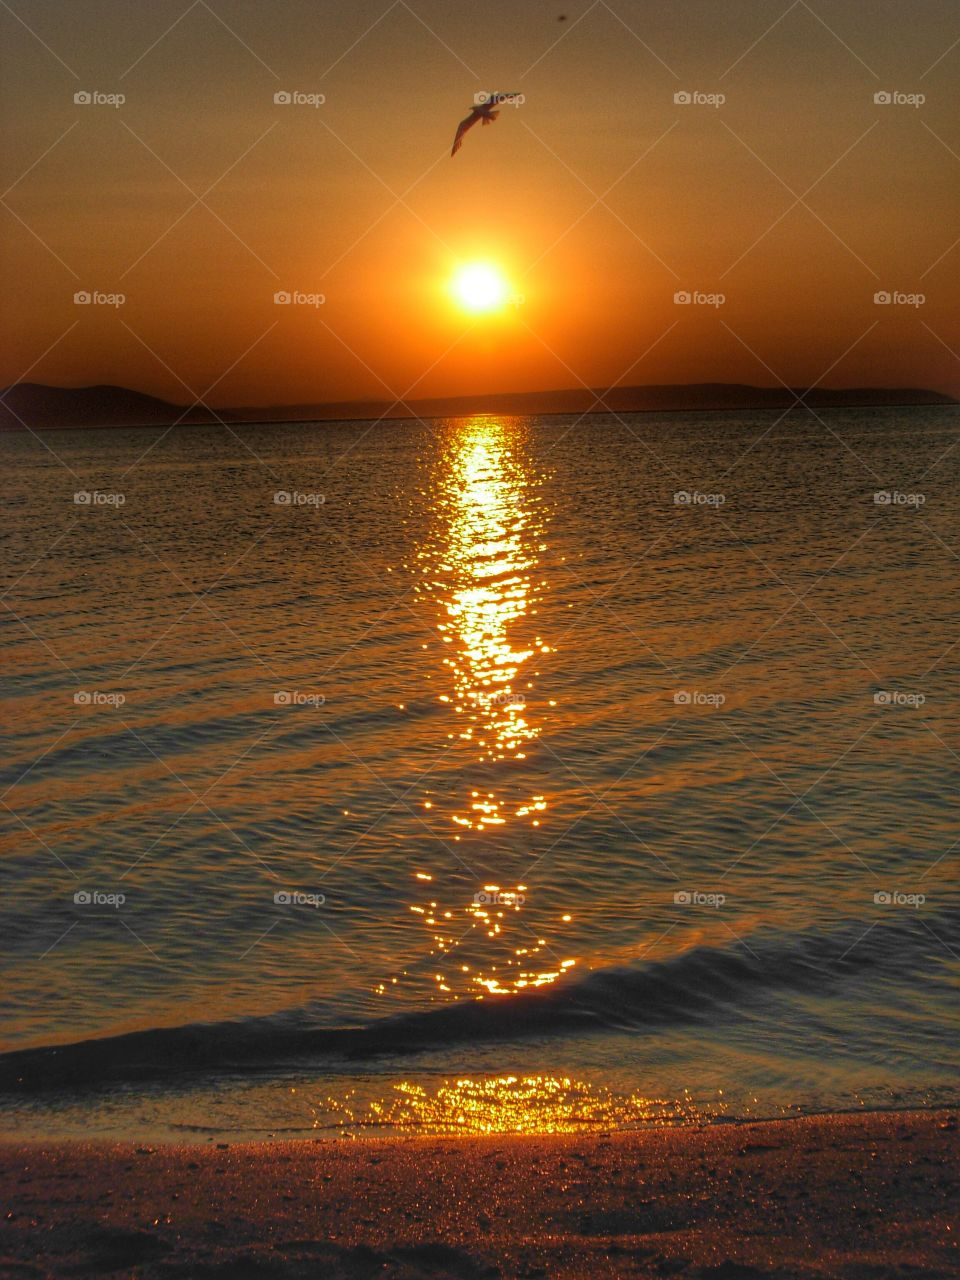 Reflection of sunlight and bird flying over sea